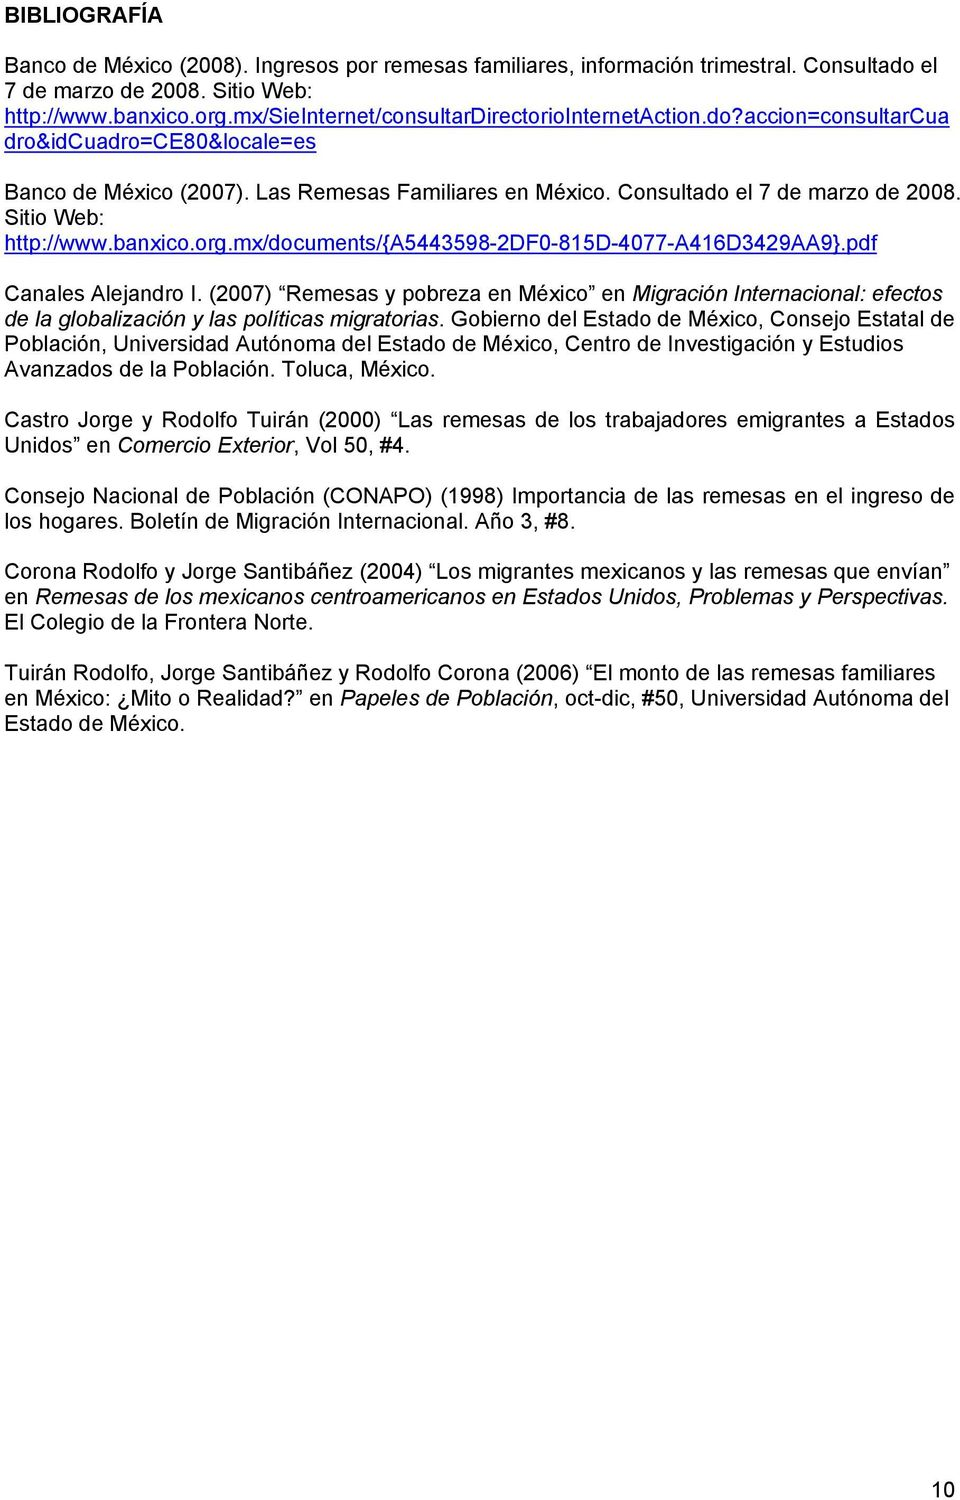 Sitio Web: http://www.banxico.org.mx/documents/{a5443598-2df0-815d-4077-a416d3429aa9}.pdf Canales Alejandro I.